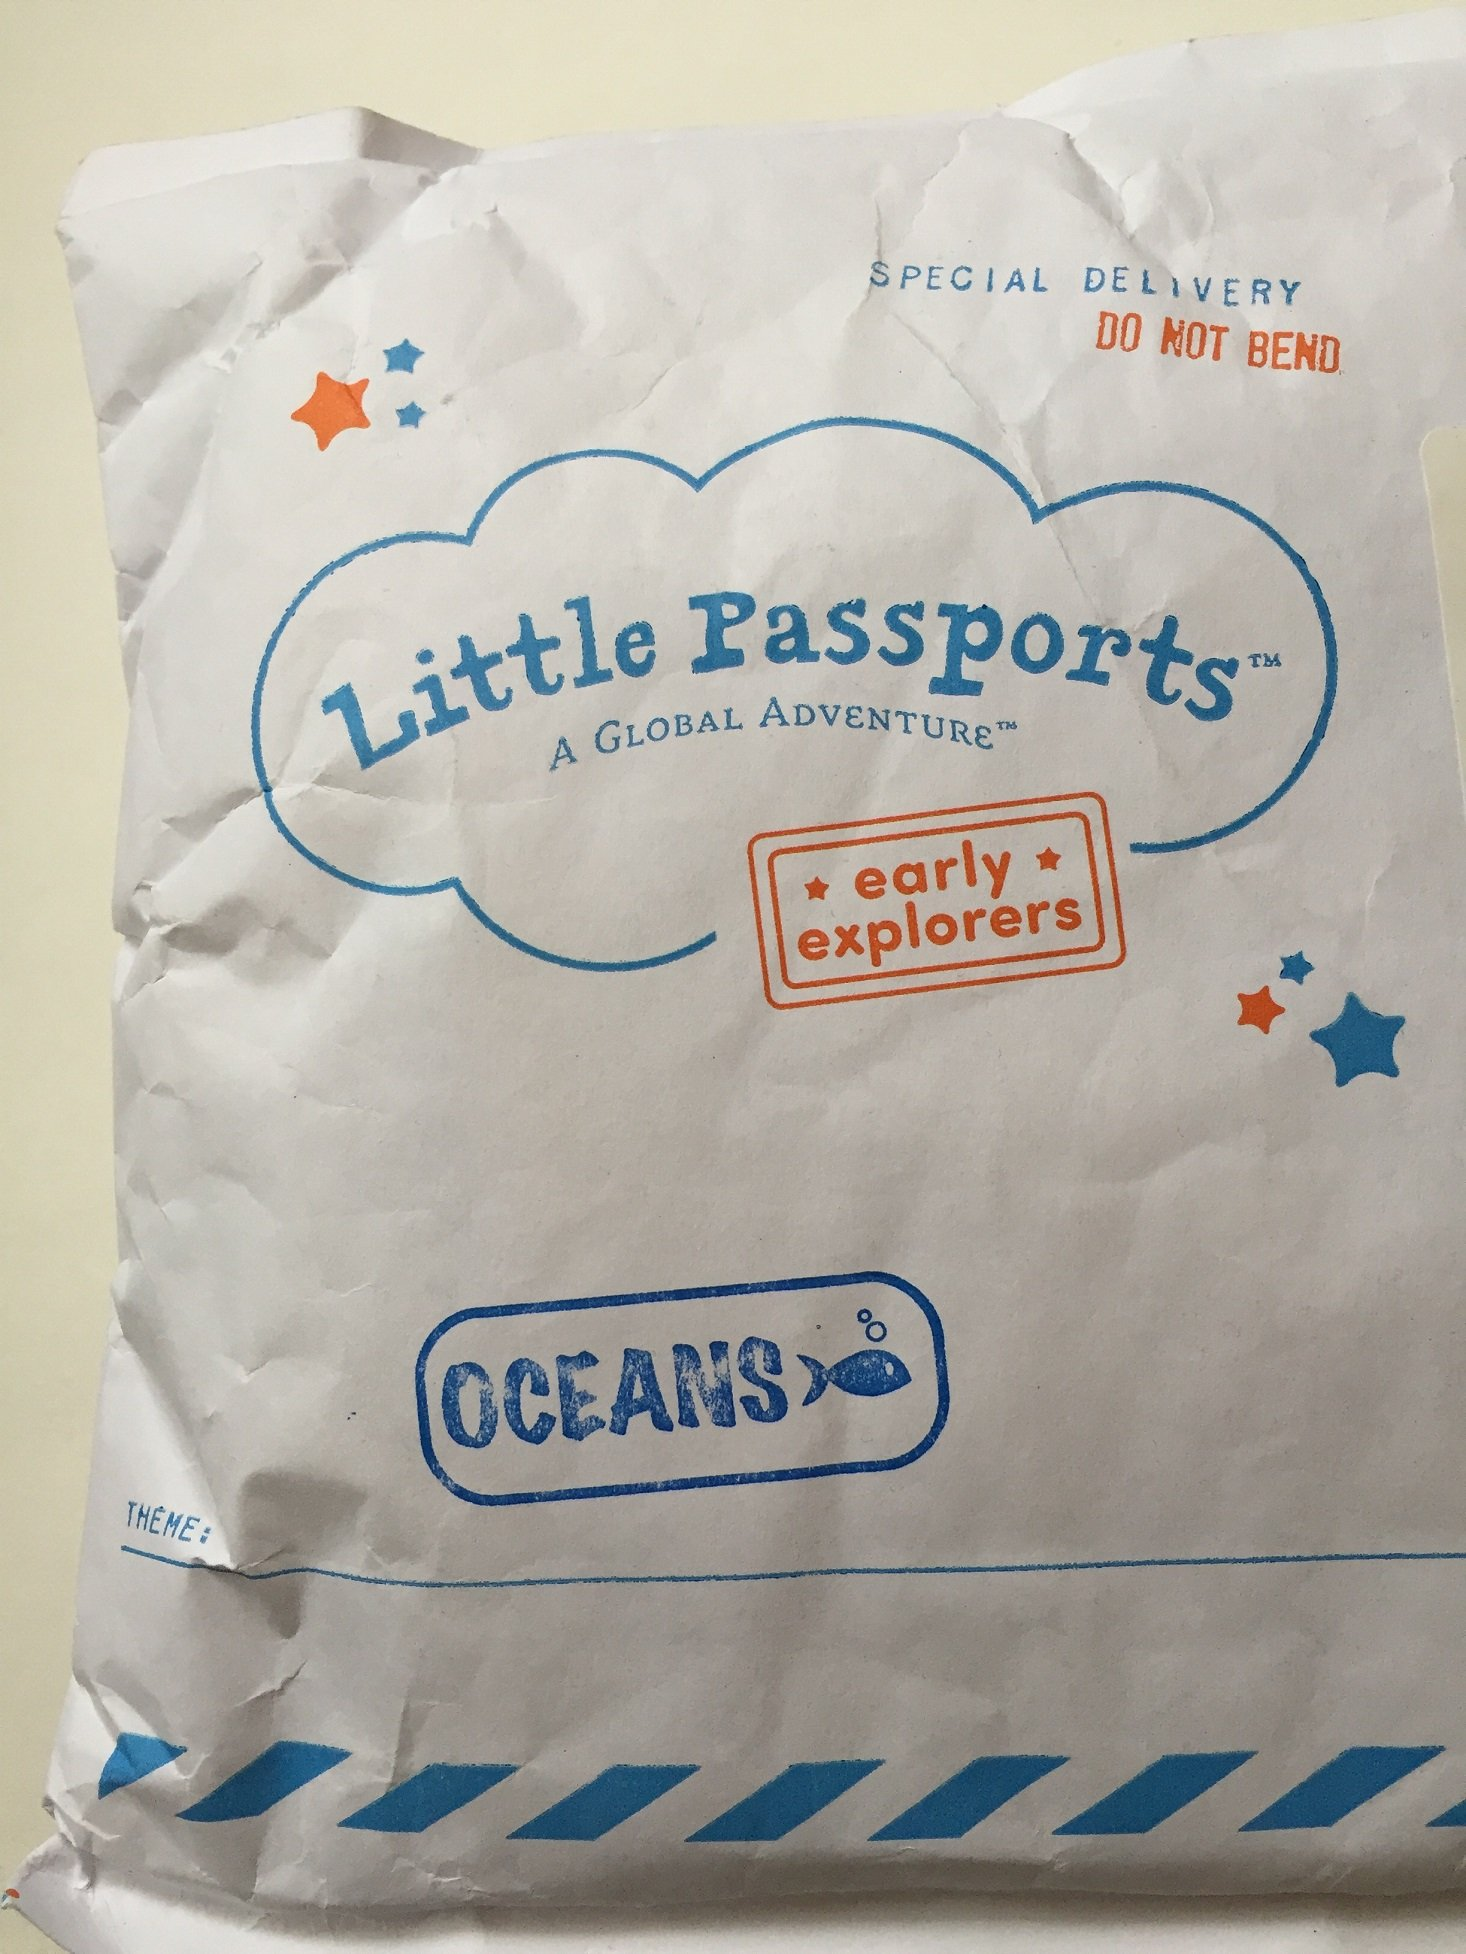 little-passports-oceans-2016-box